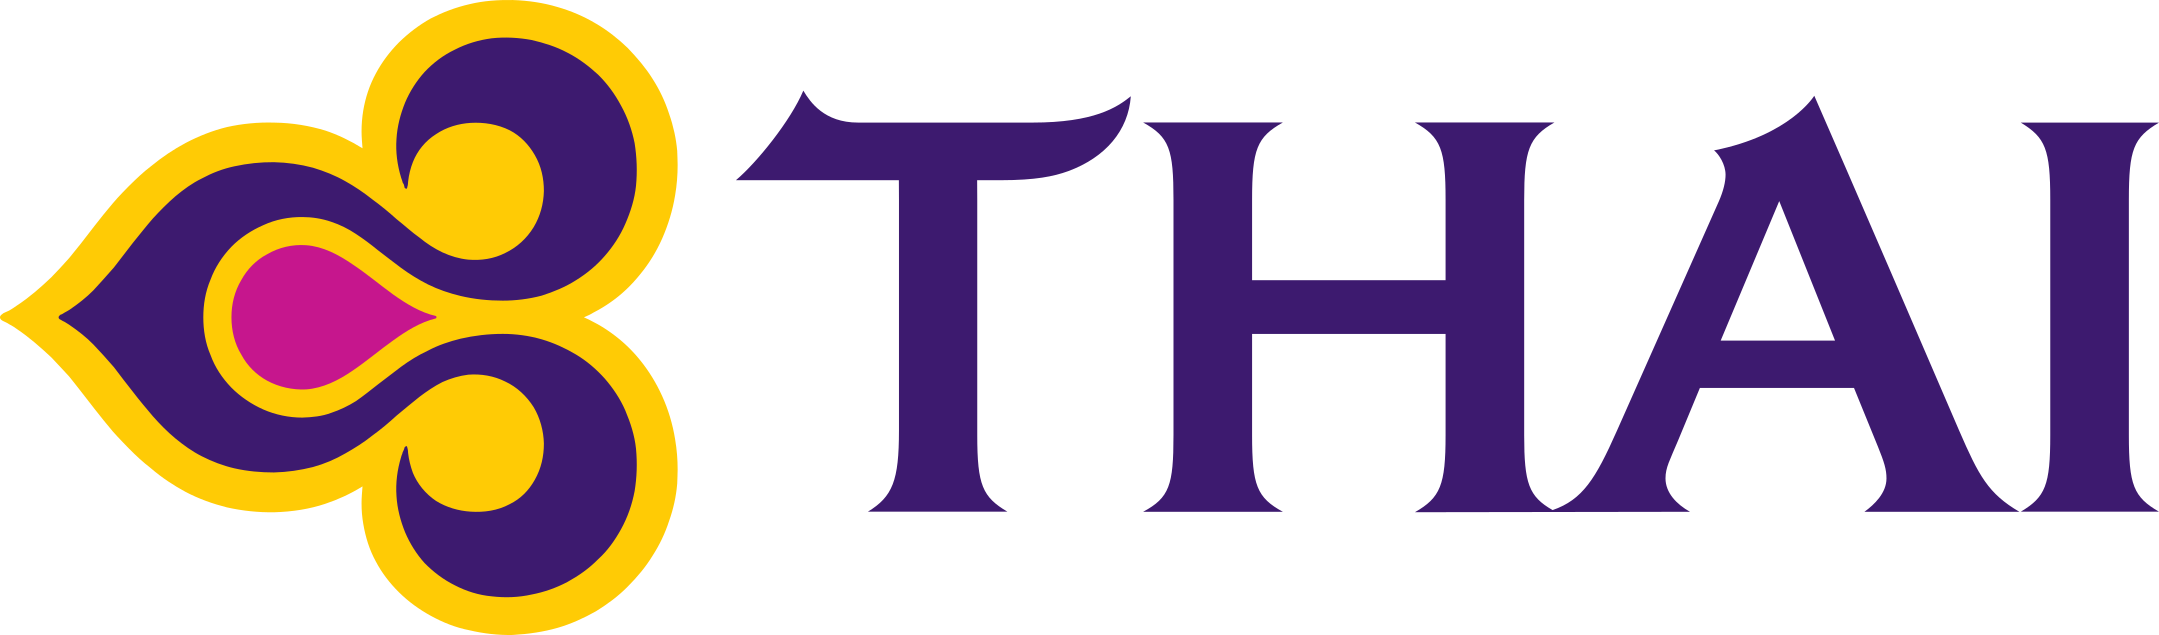 thai airways logo 1 - Thai Airways Logo